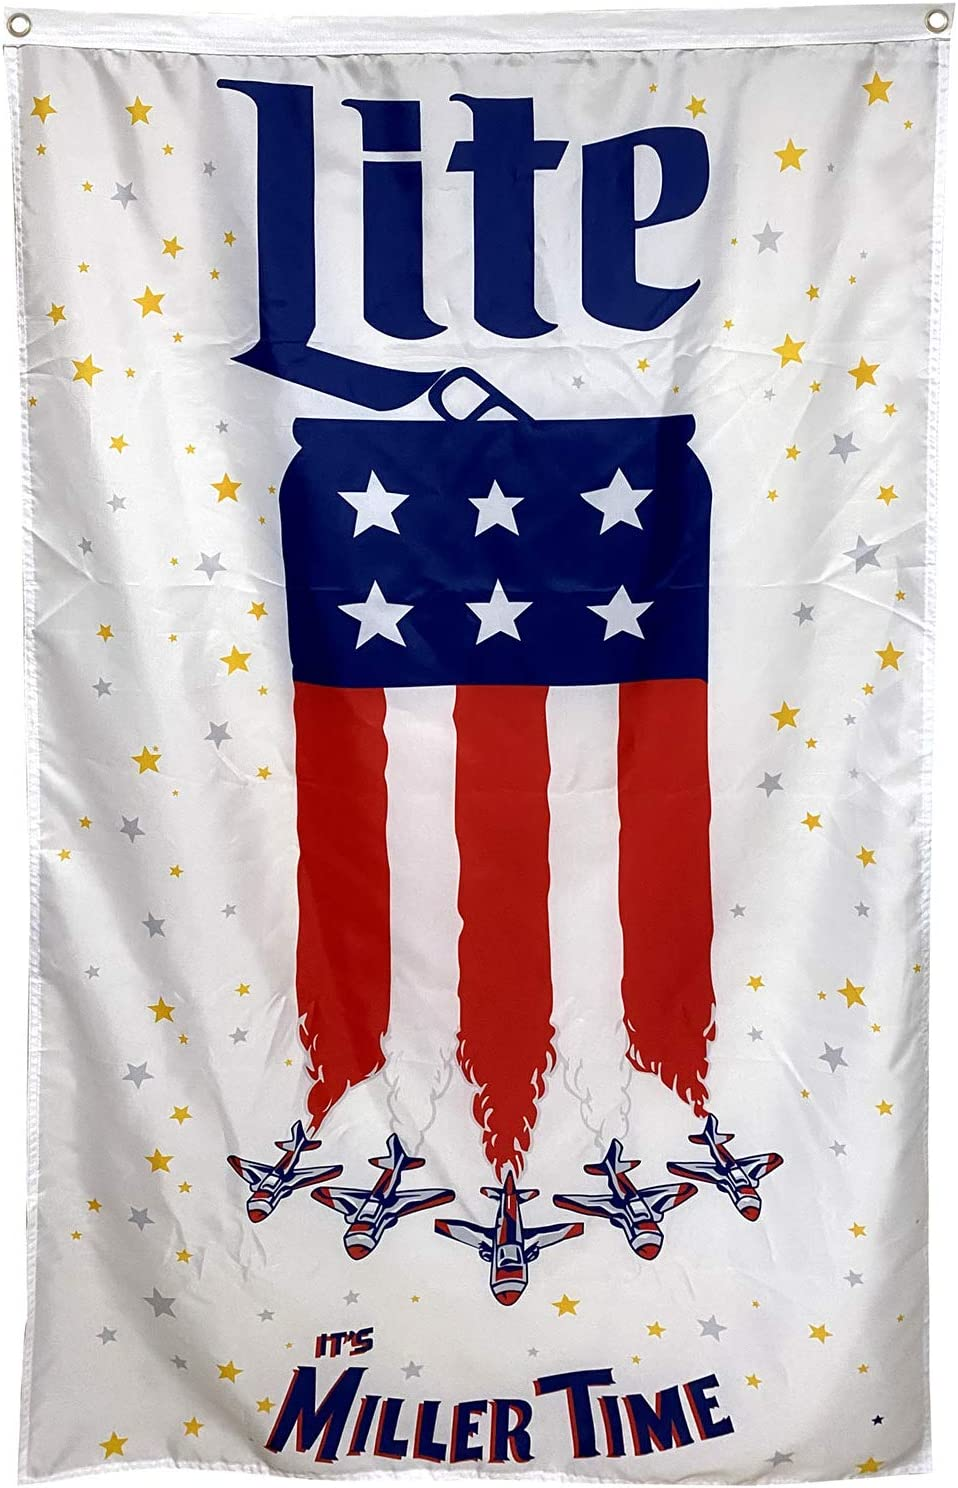 Dimike Miller Lite Flag It's Time Milwaukee Brewing American 3x5 ft Banner